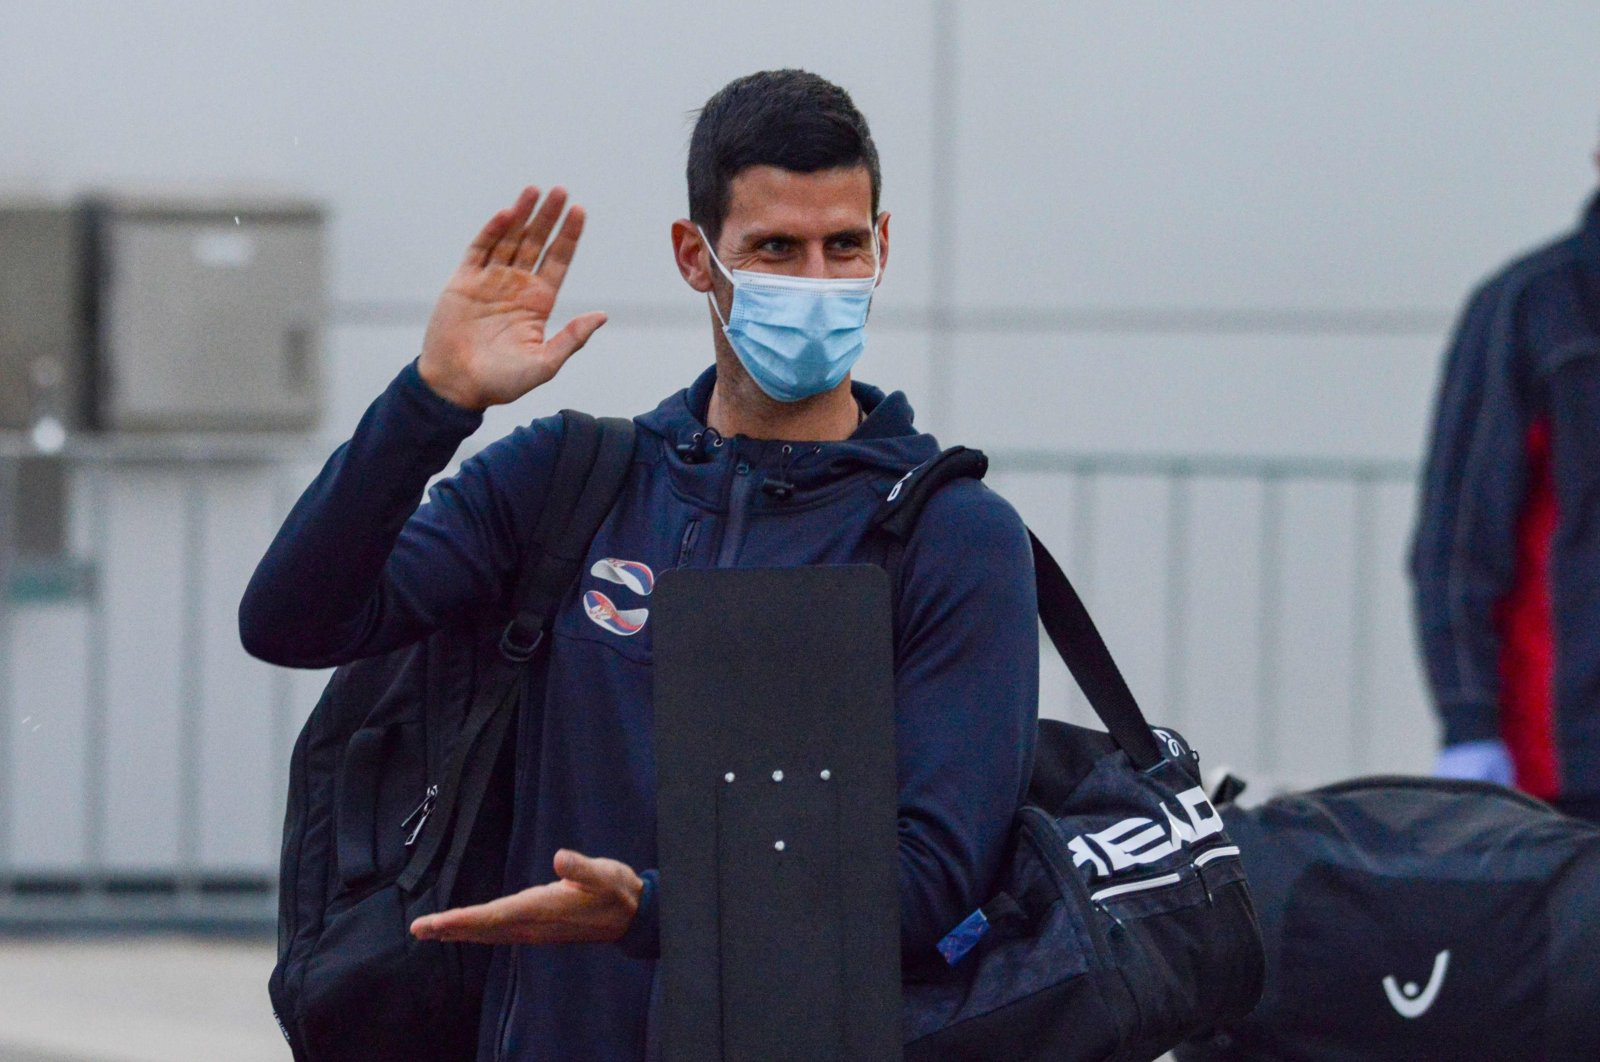 Serbian tennis player Novak Djokovic arrives before heading straight for two-week isolation ahead of Australian Open warm up matches, in Adelaide, Australia, Jan. 14, 2021. (AFP Photo)